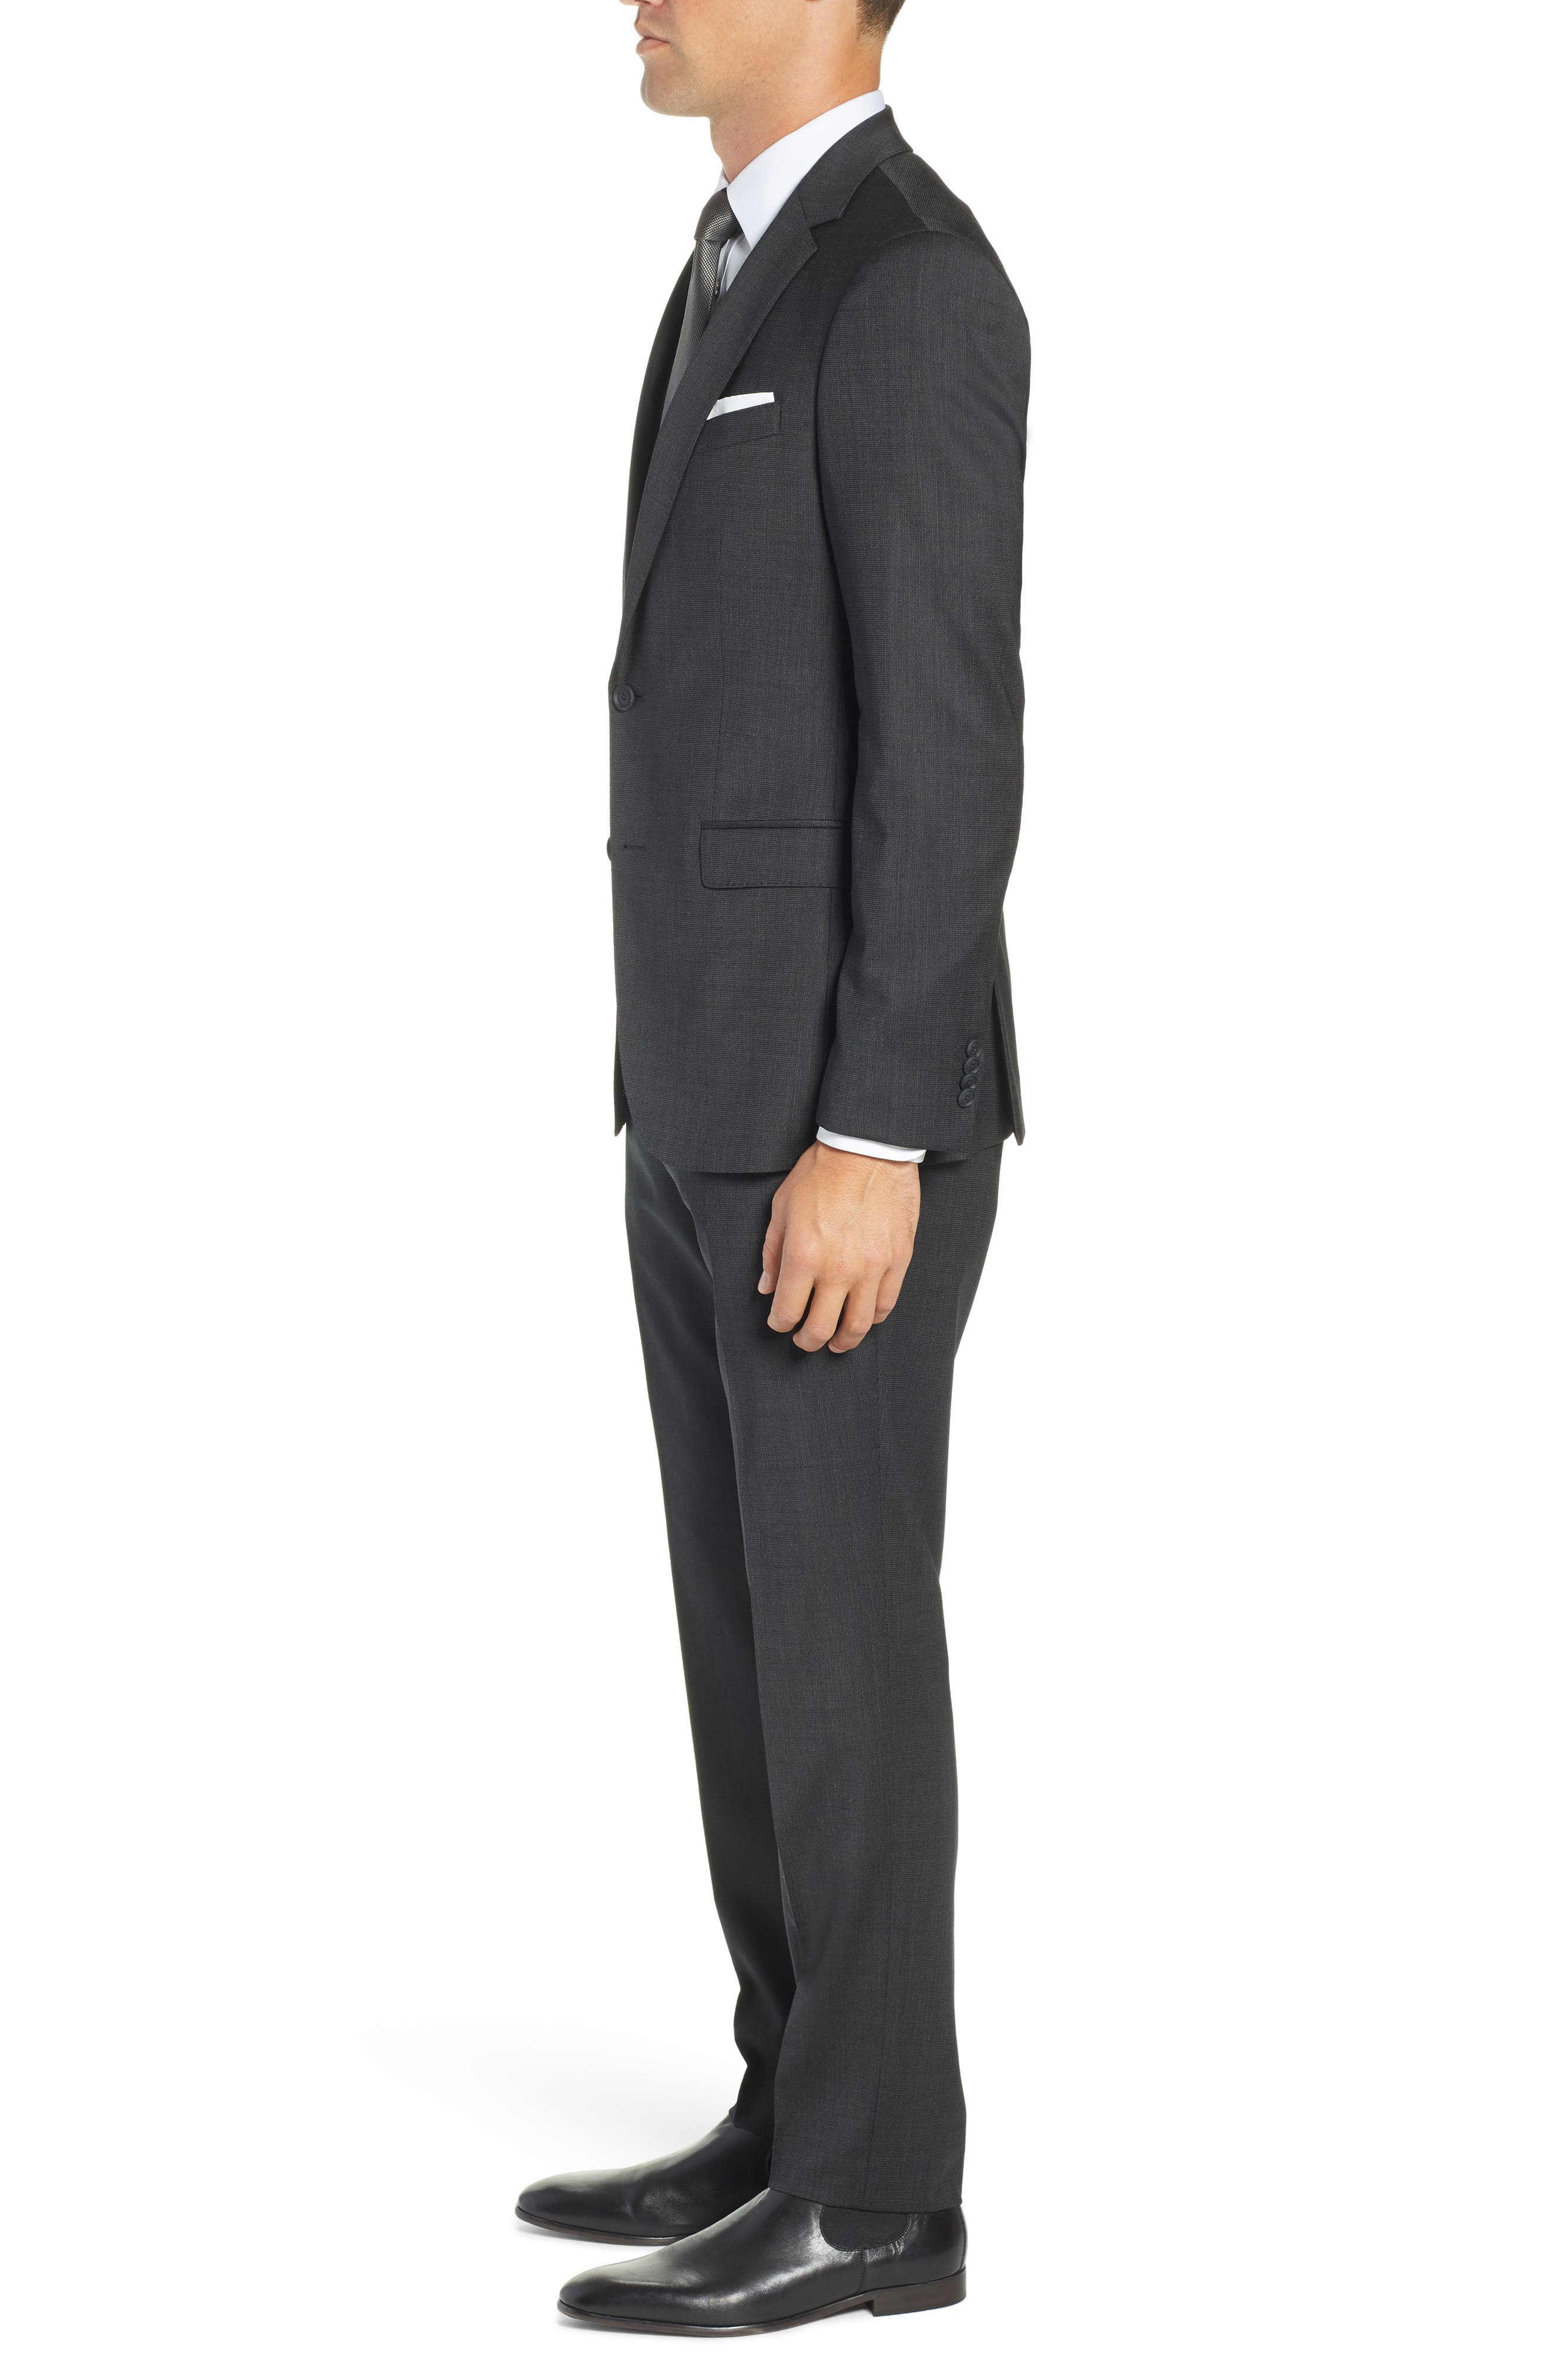 BOSS, Nestro/Byte Trim Fit Stretch Solid Wool Suit, Alternate thumbnail 3, color, 001